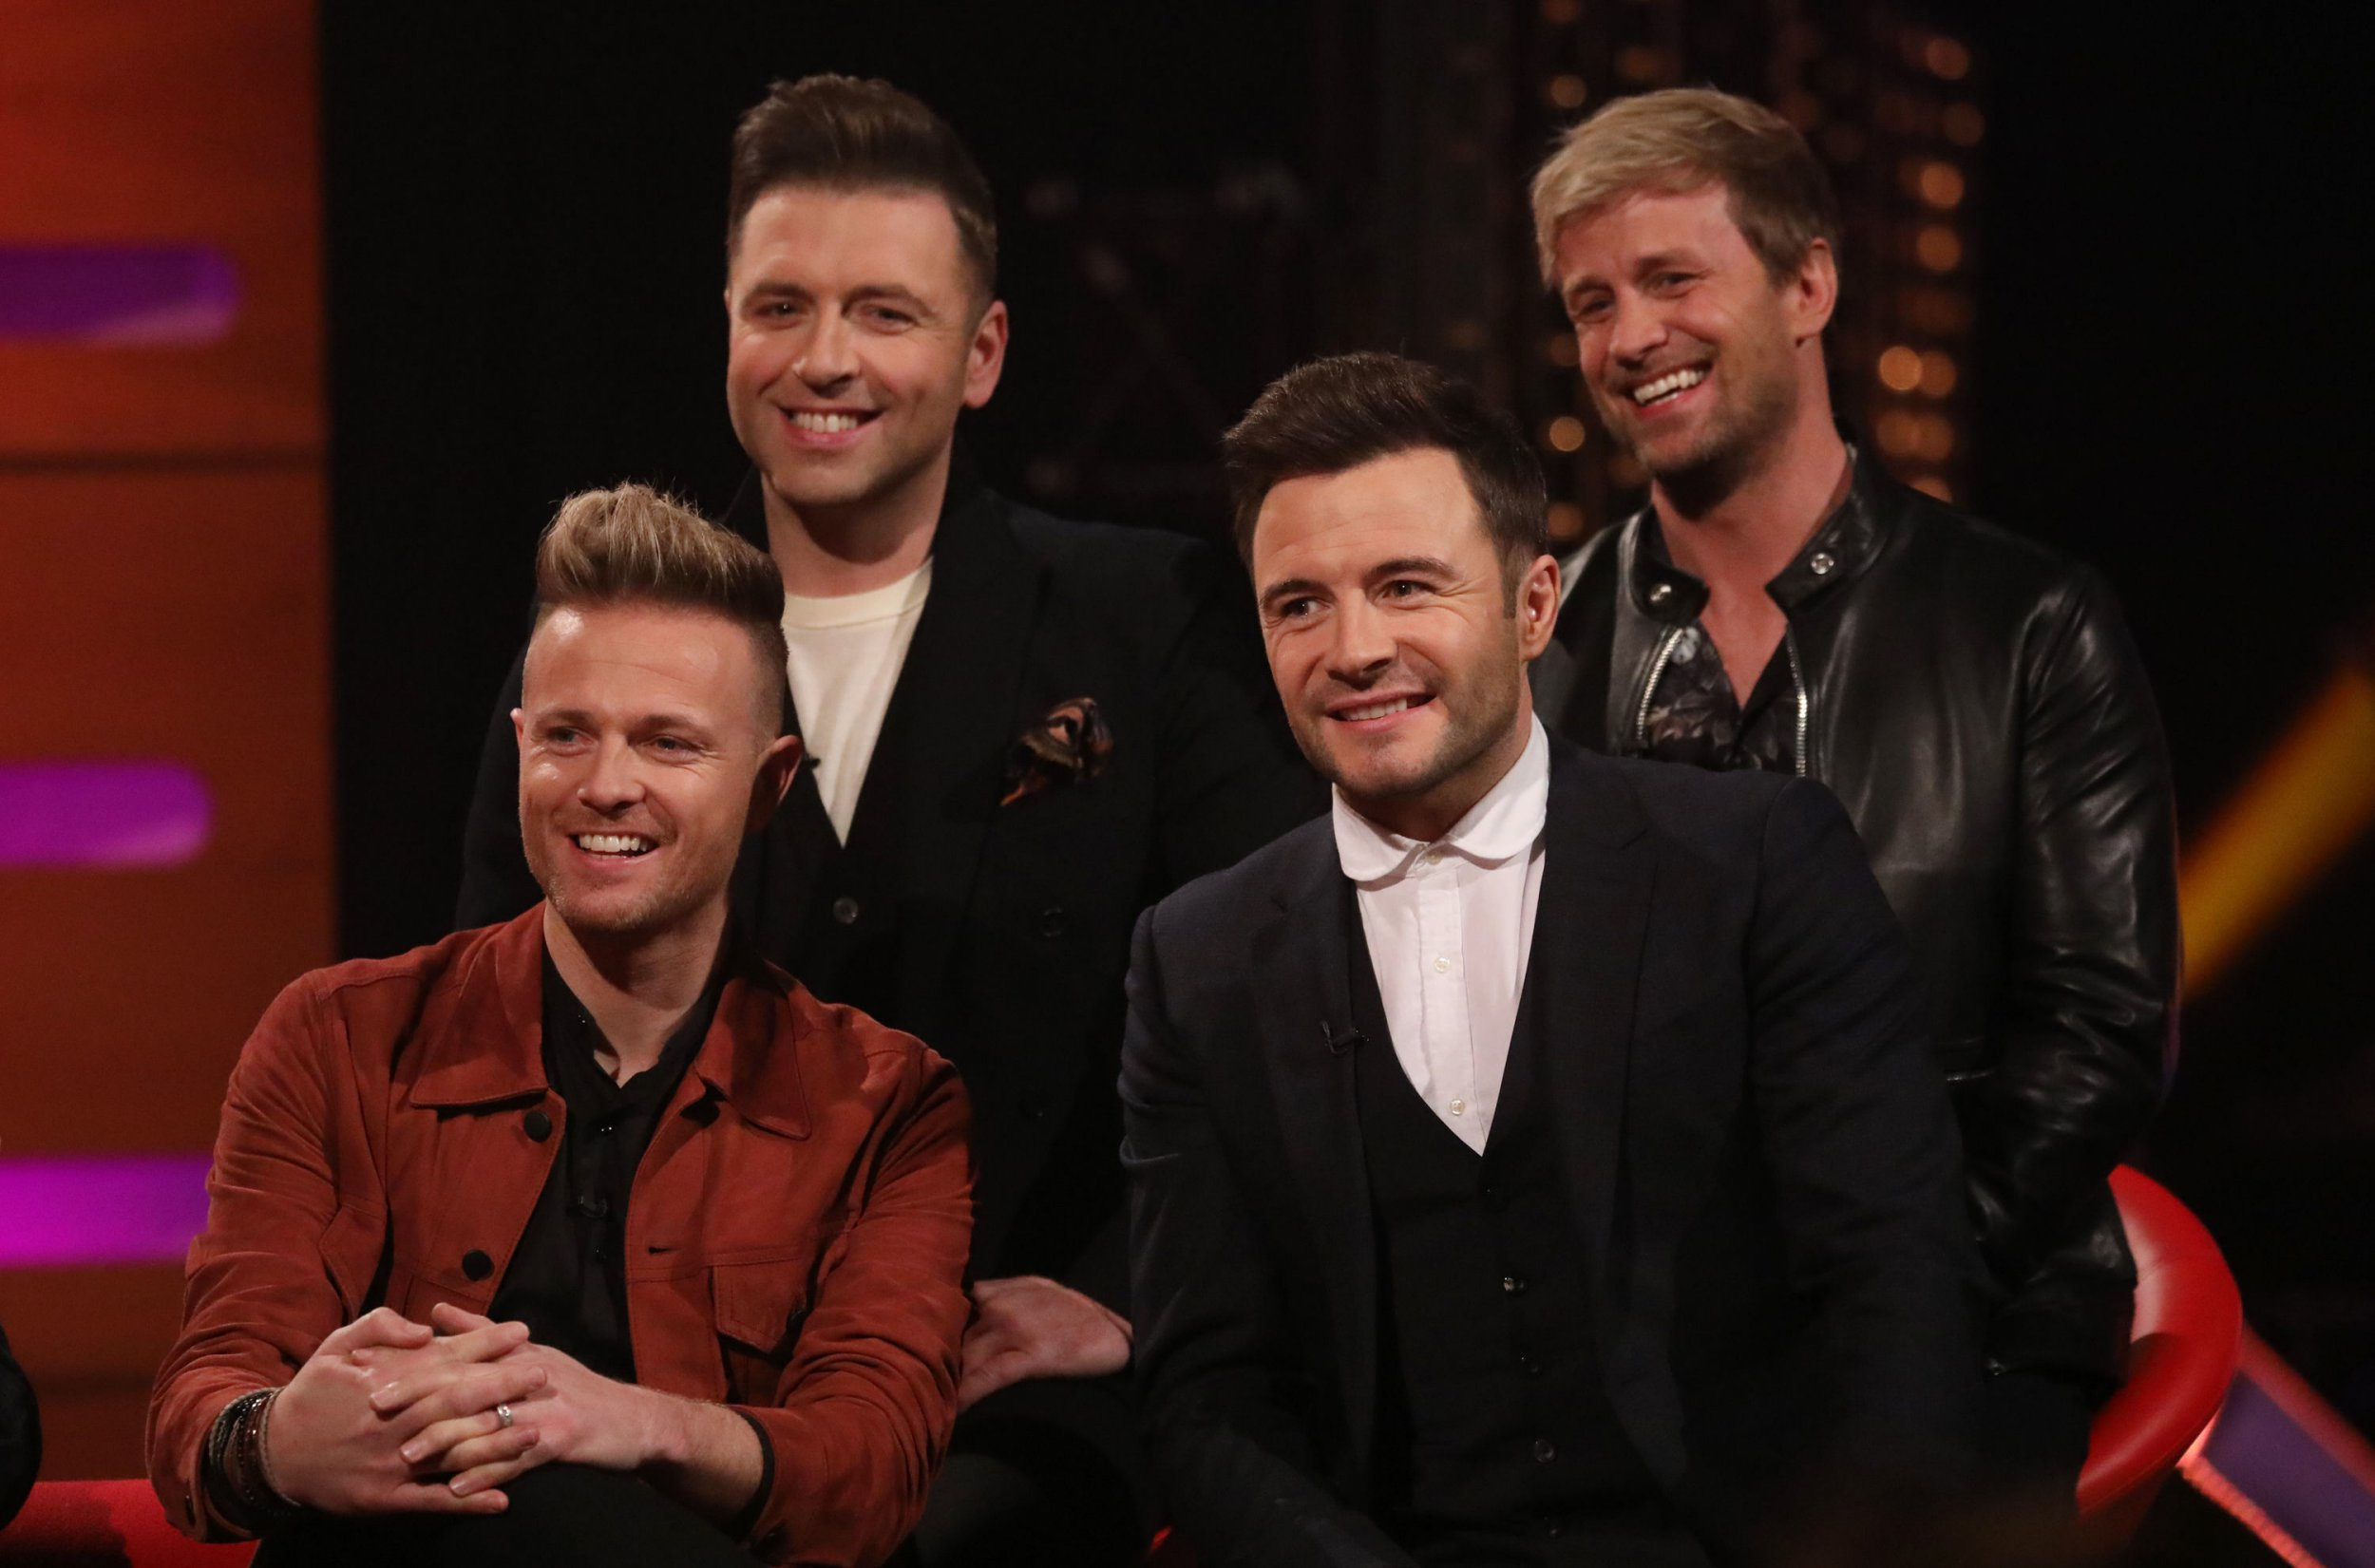 Westlife, ((back row) Kian Egan, Markus Feehily, (front row) Nicky Byrne and Shane Filan) during the filming for the Graham Norton Show at BBC Studioworks 6 Television Centre, Wood Lane, London, to be aired on BBC One on Friday evening. PRESS ASSOCIATION. Picture date: Thursday January 10, 2019. Photo credit should read: PA Images on behalf of So TV